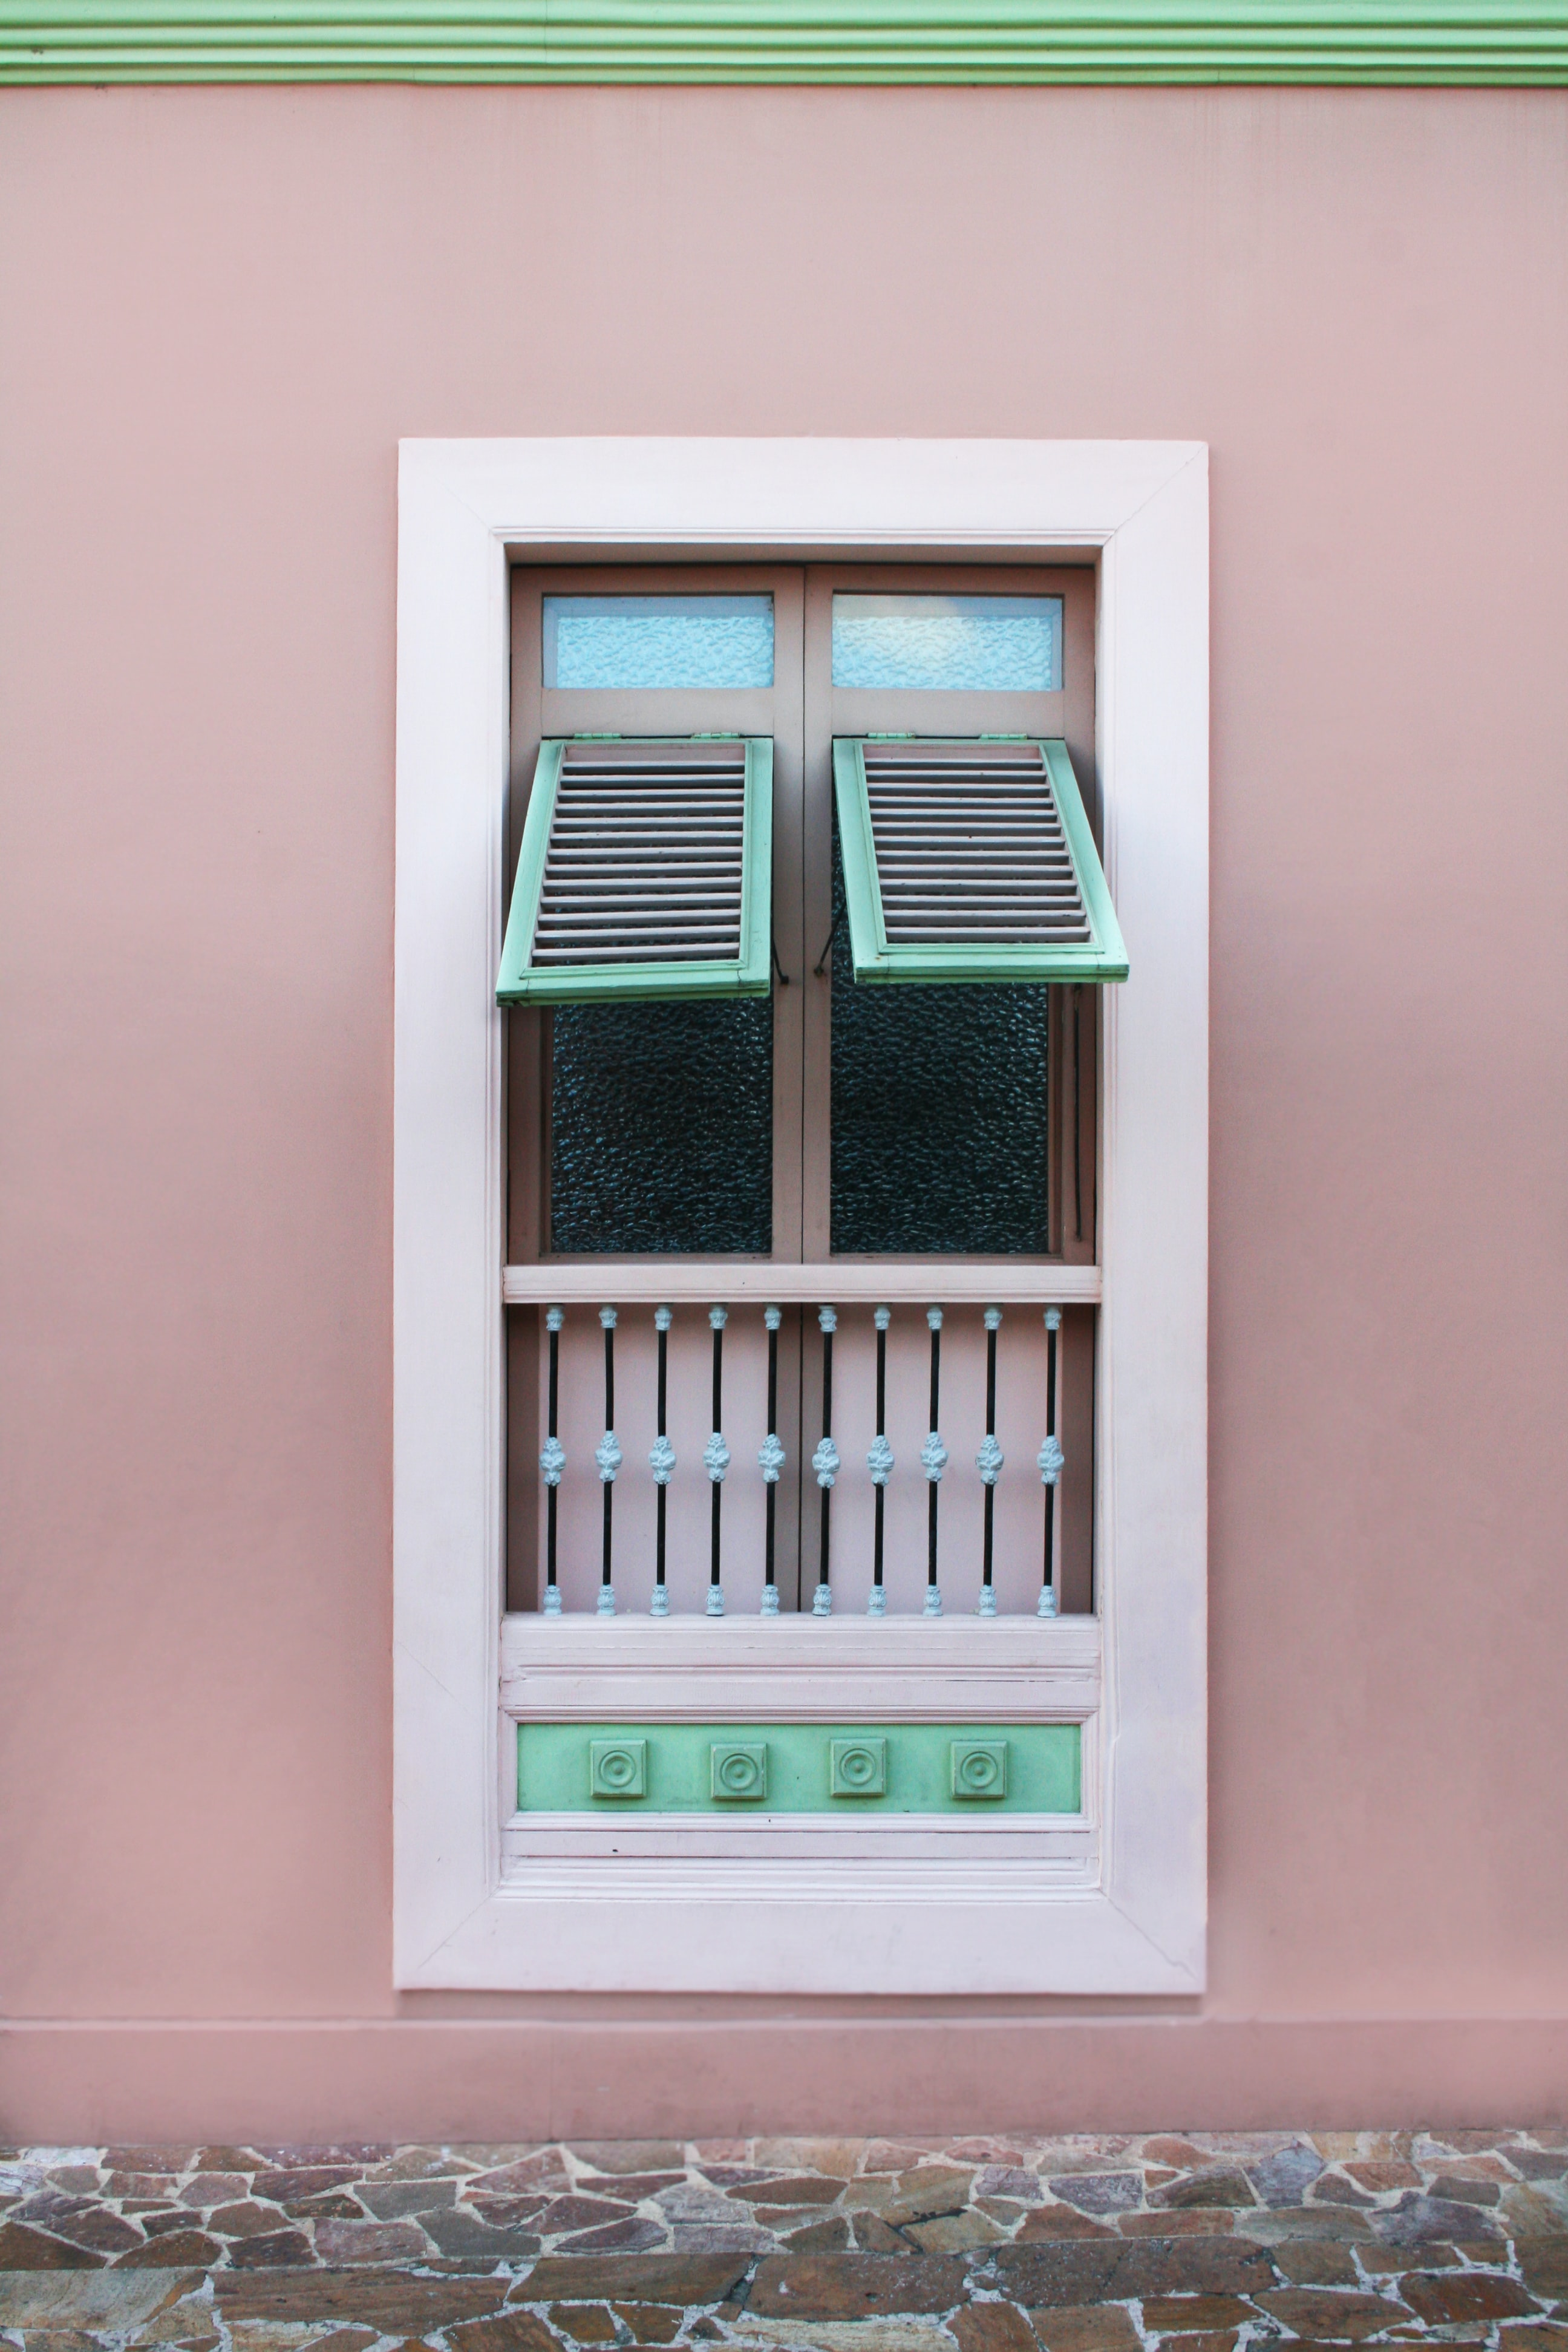 opened white teal and brown wooden louvered window panel